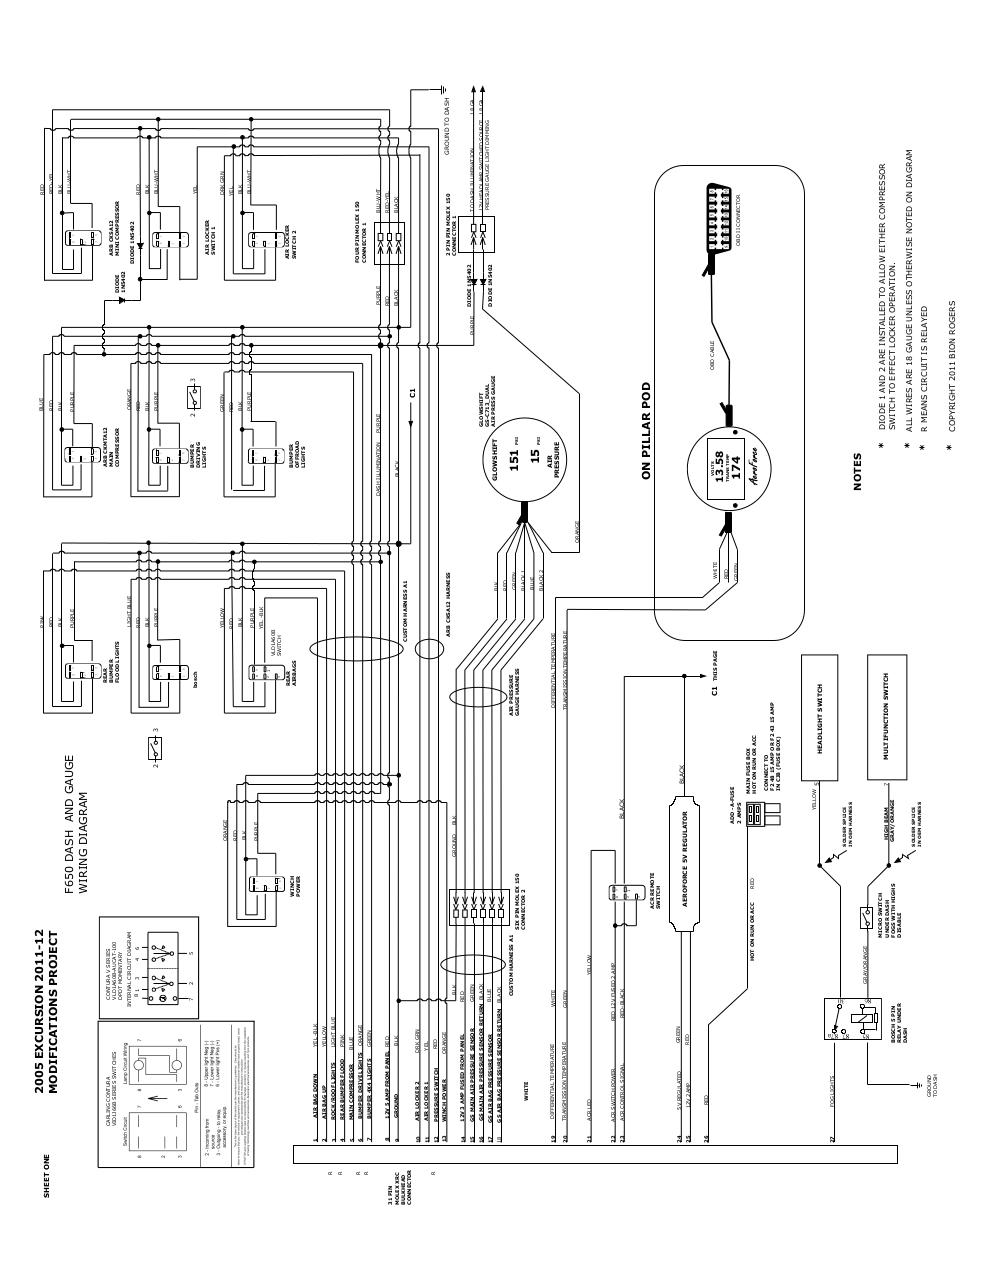 wiring diagram for 2 lights and switches 65 mustang excursion modifications f650 dash gauges.sdr by bion rogers - sheet 1 pdf ...